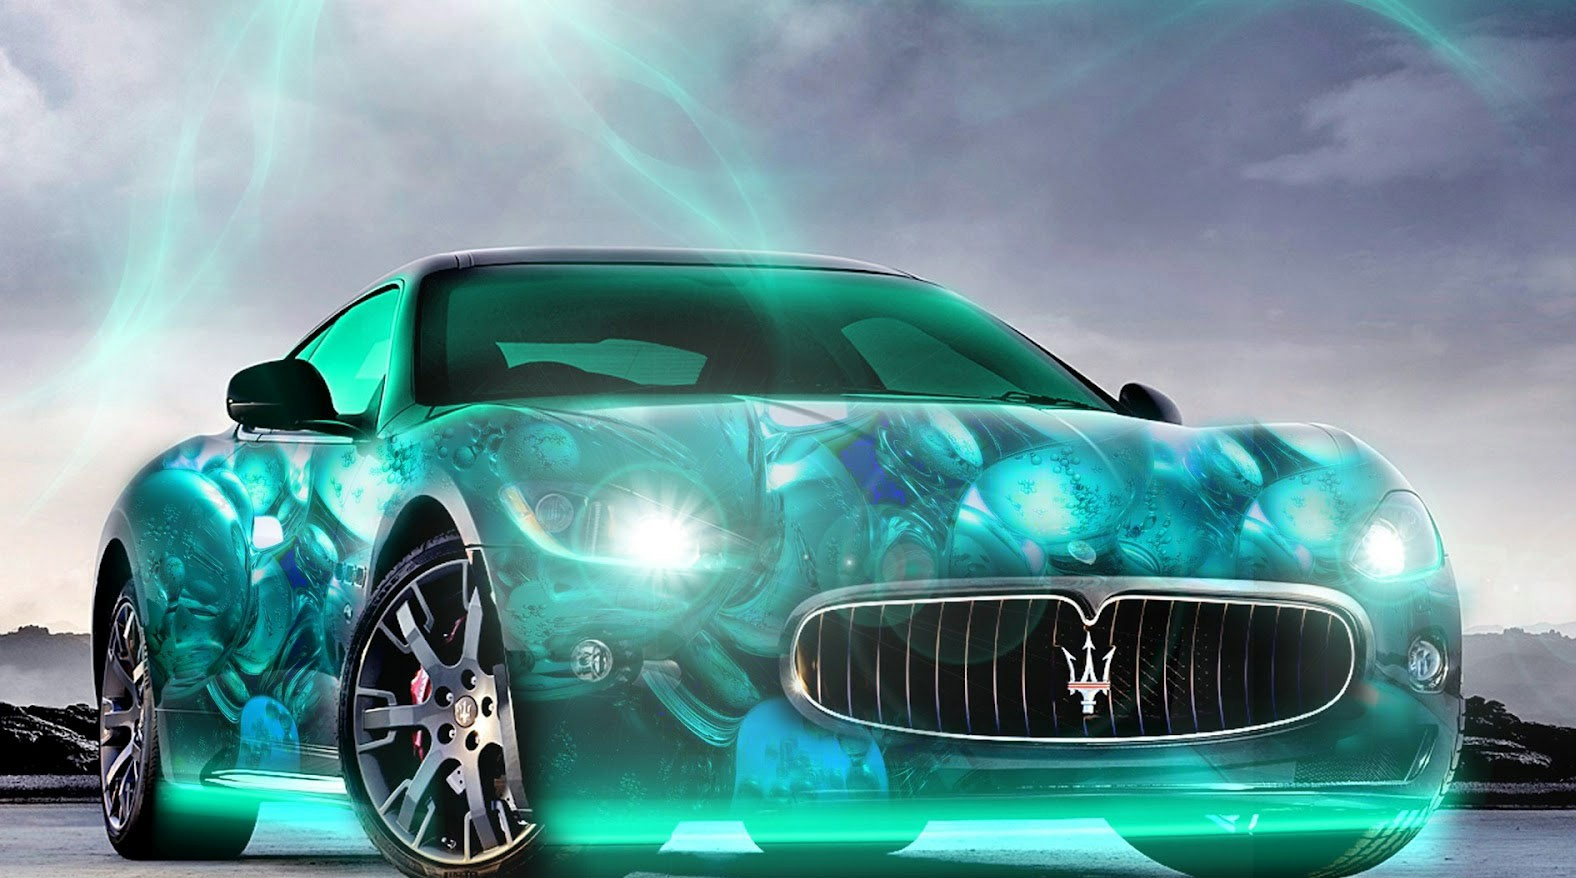 Hd 3d Car Wallpapers Background Download